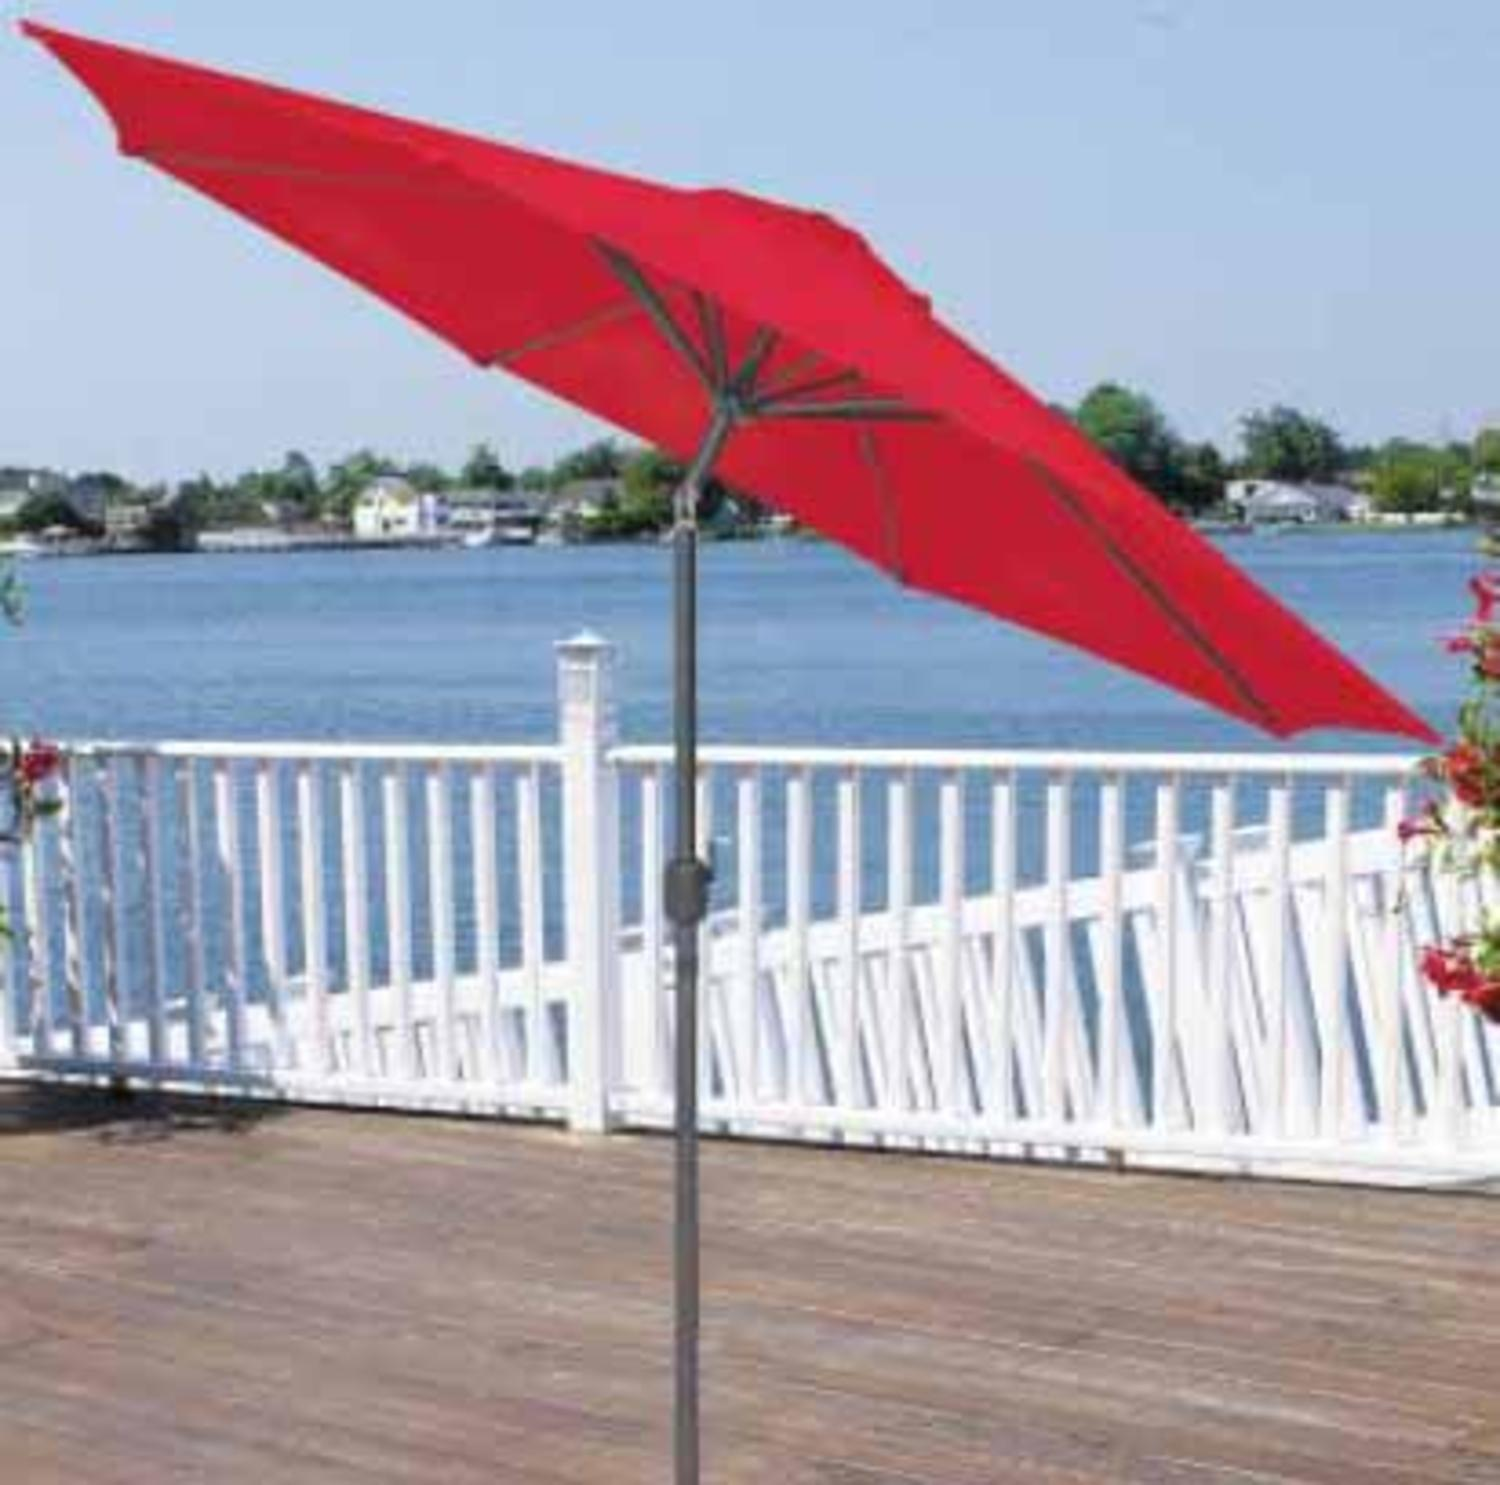 9' Outdoor Patio Market Umbrella with Hand Crank and Tilt - Red and Black